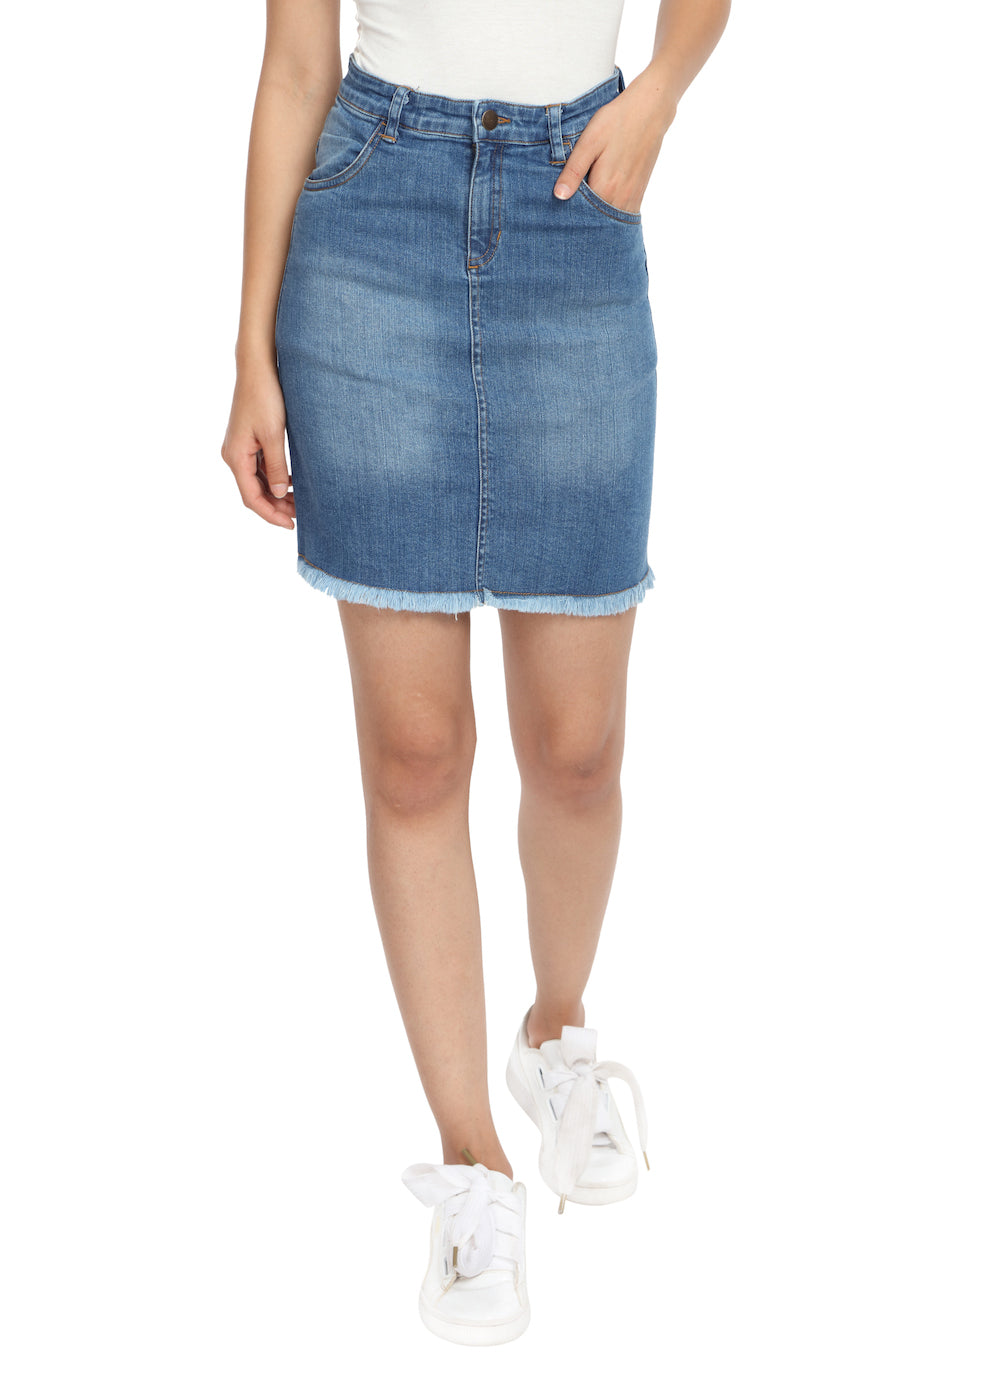 Denim Skirt with Raw Hem - GENZEE